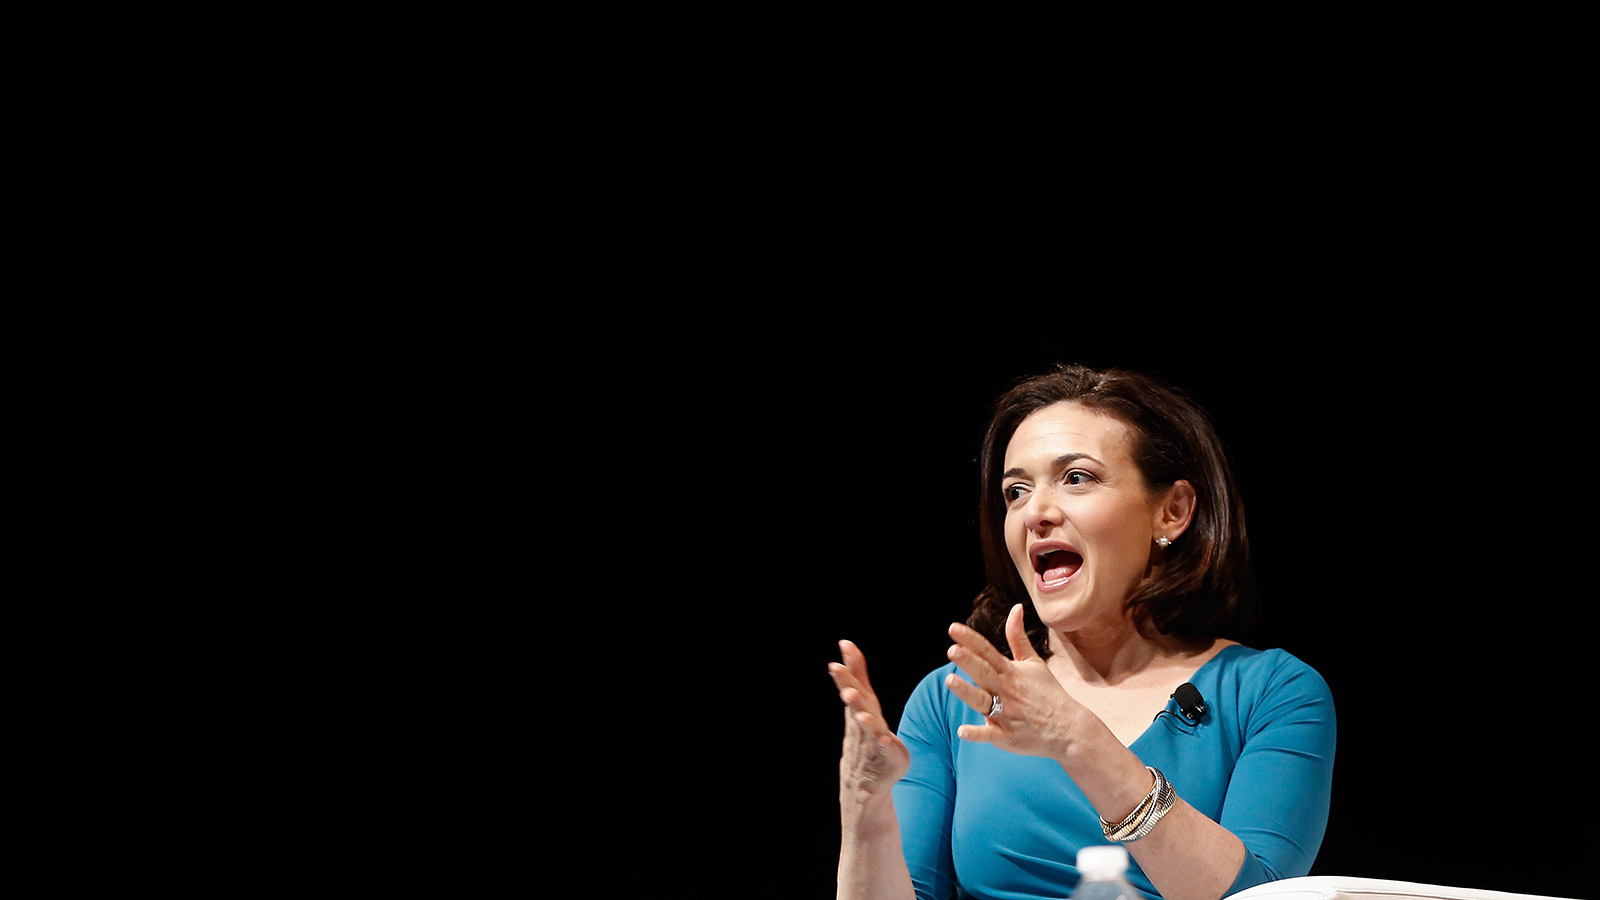 Facebook Inc. Chief Operating Officer Sheryl Sandberg Joins Key Speakers At Cannes Lions International Festival Of Creativity